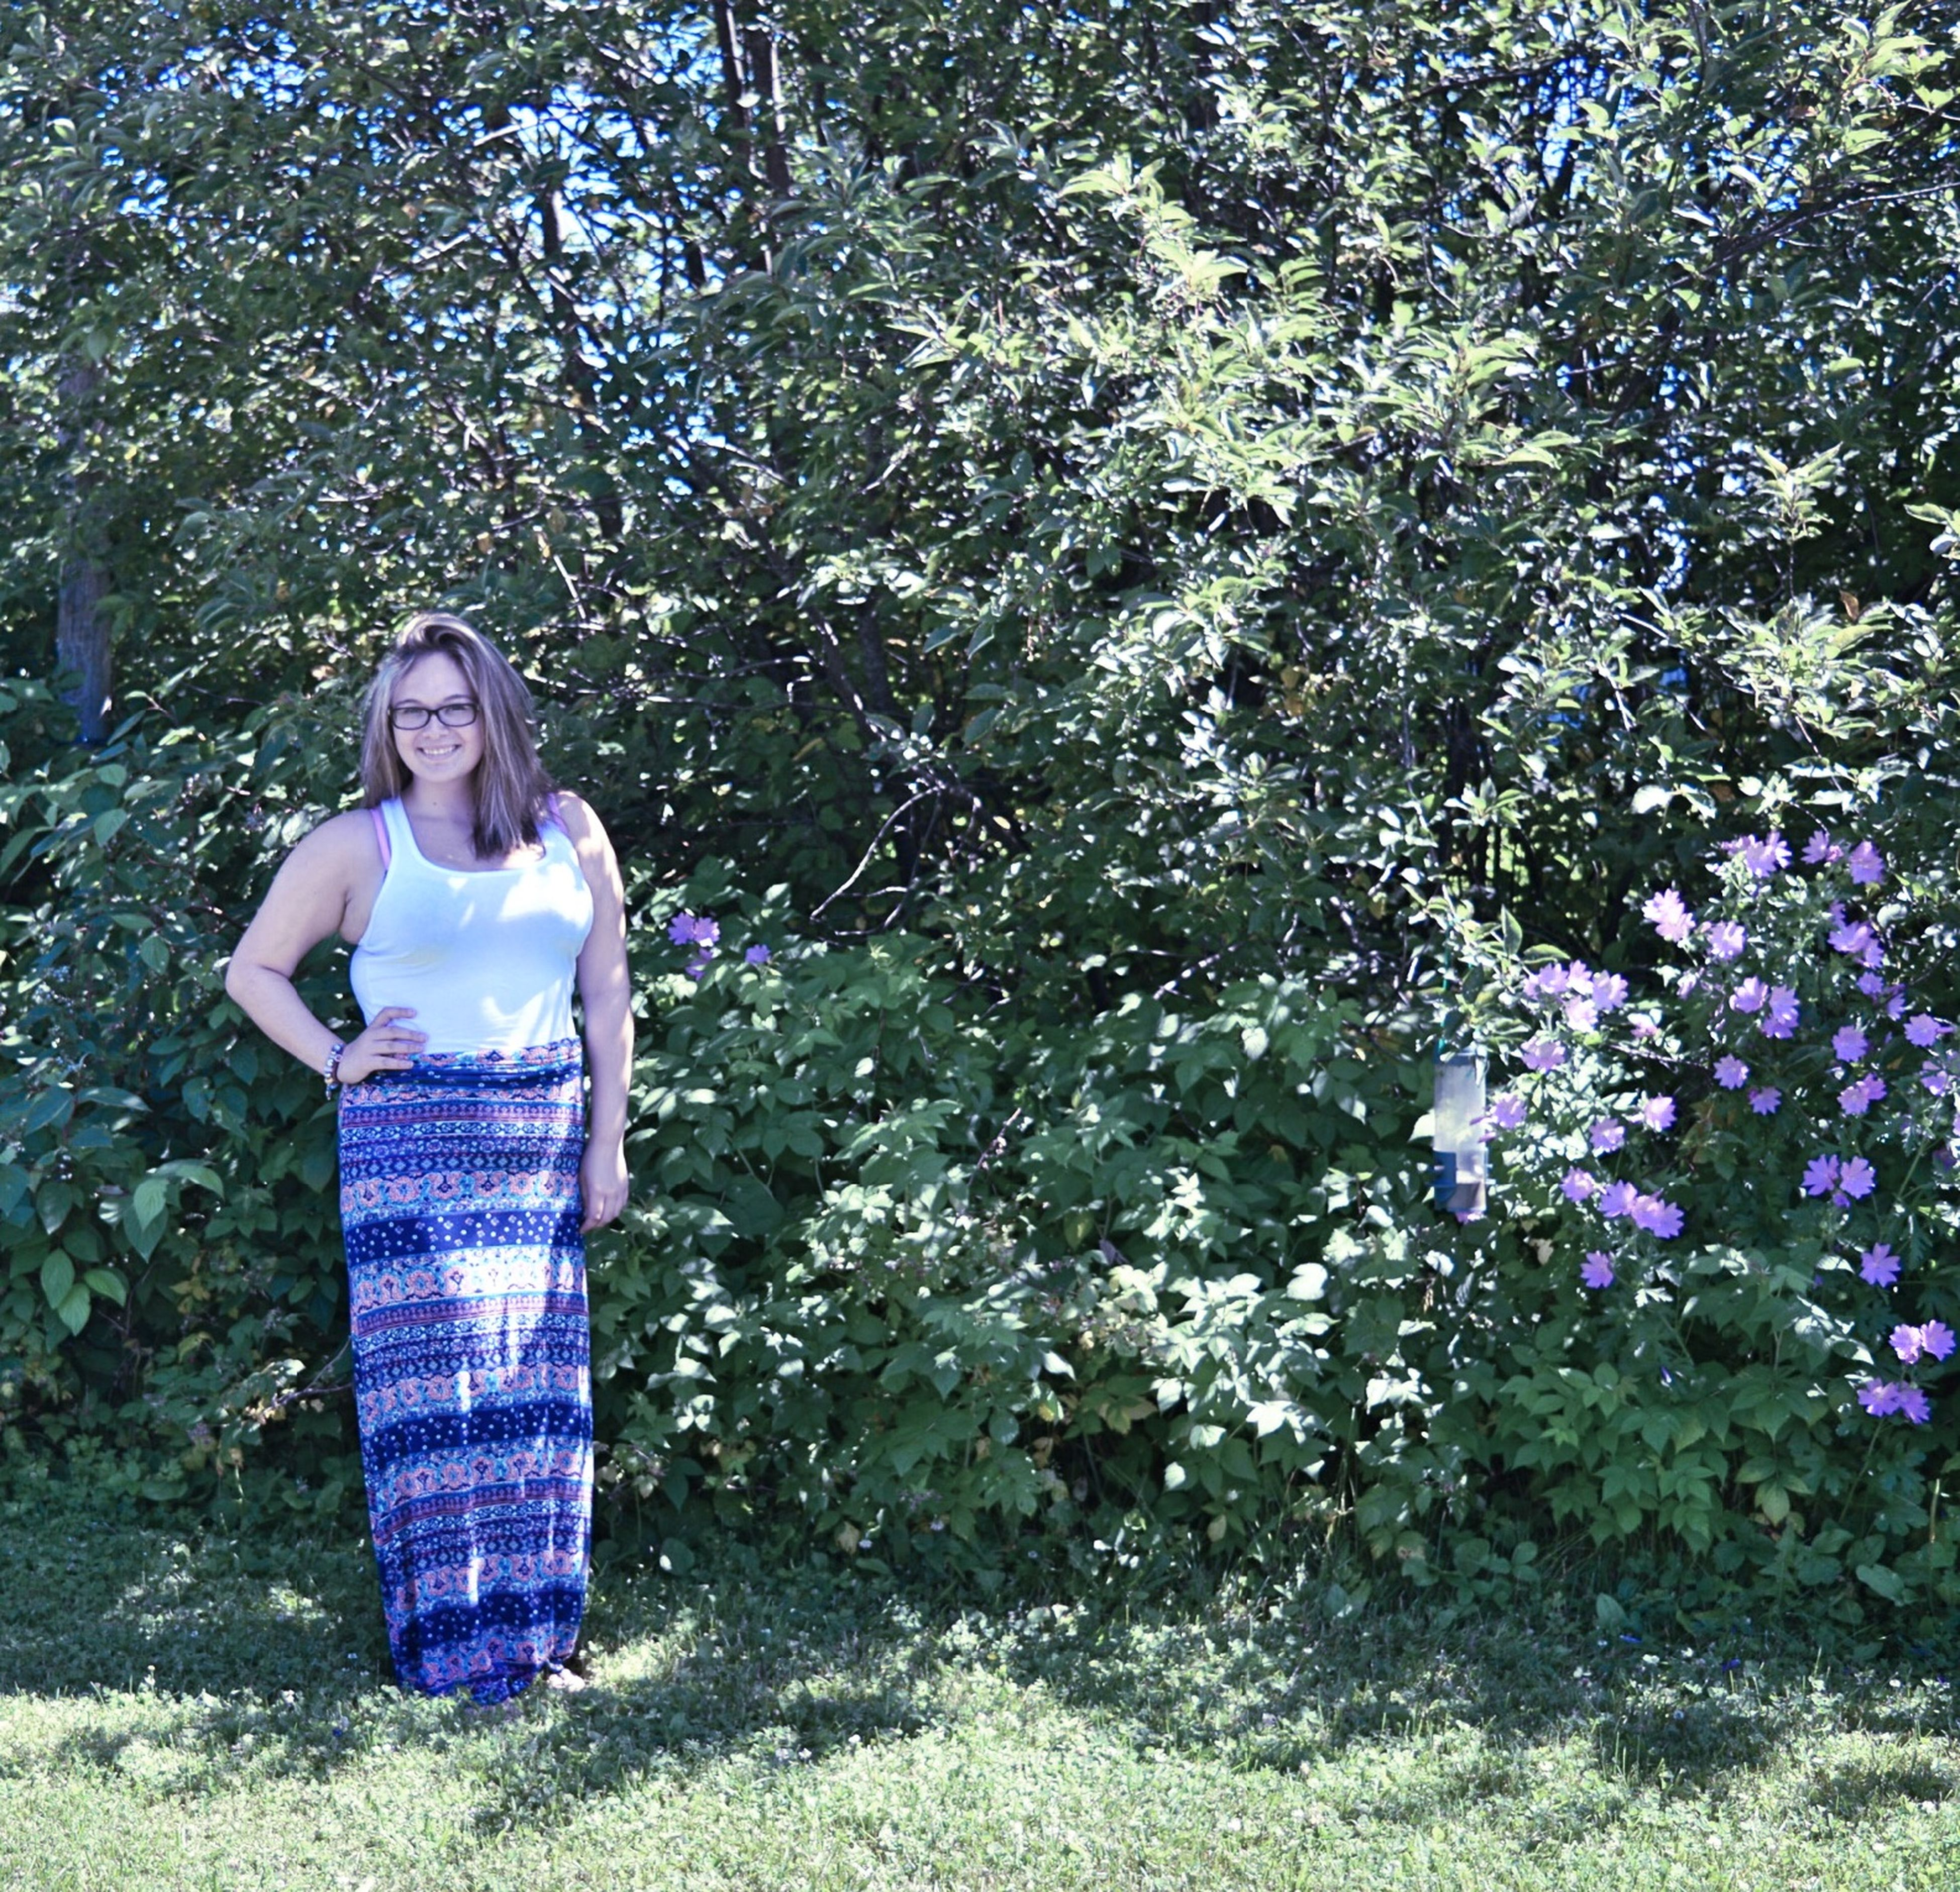 casual clothing, lifestyles, leisure activity, person, tree, full length, childhood, growth, standing, nature, plant, elementary age, grass, beauty in nature, tranquility, girls, day, forest